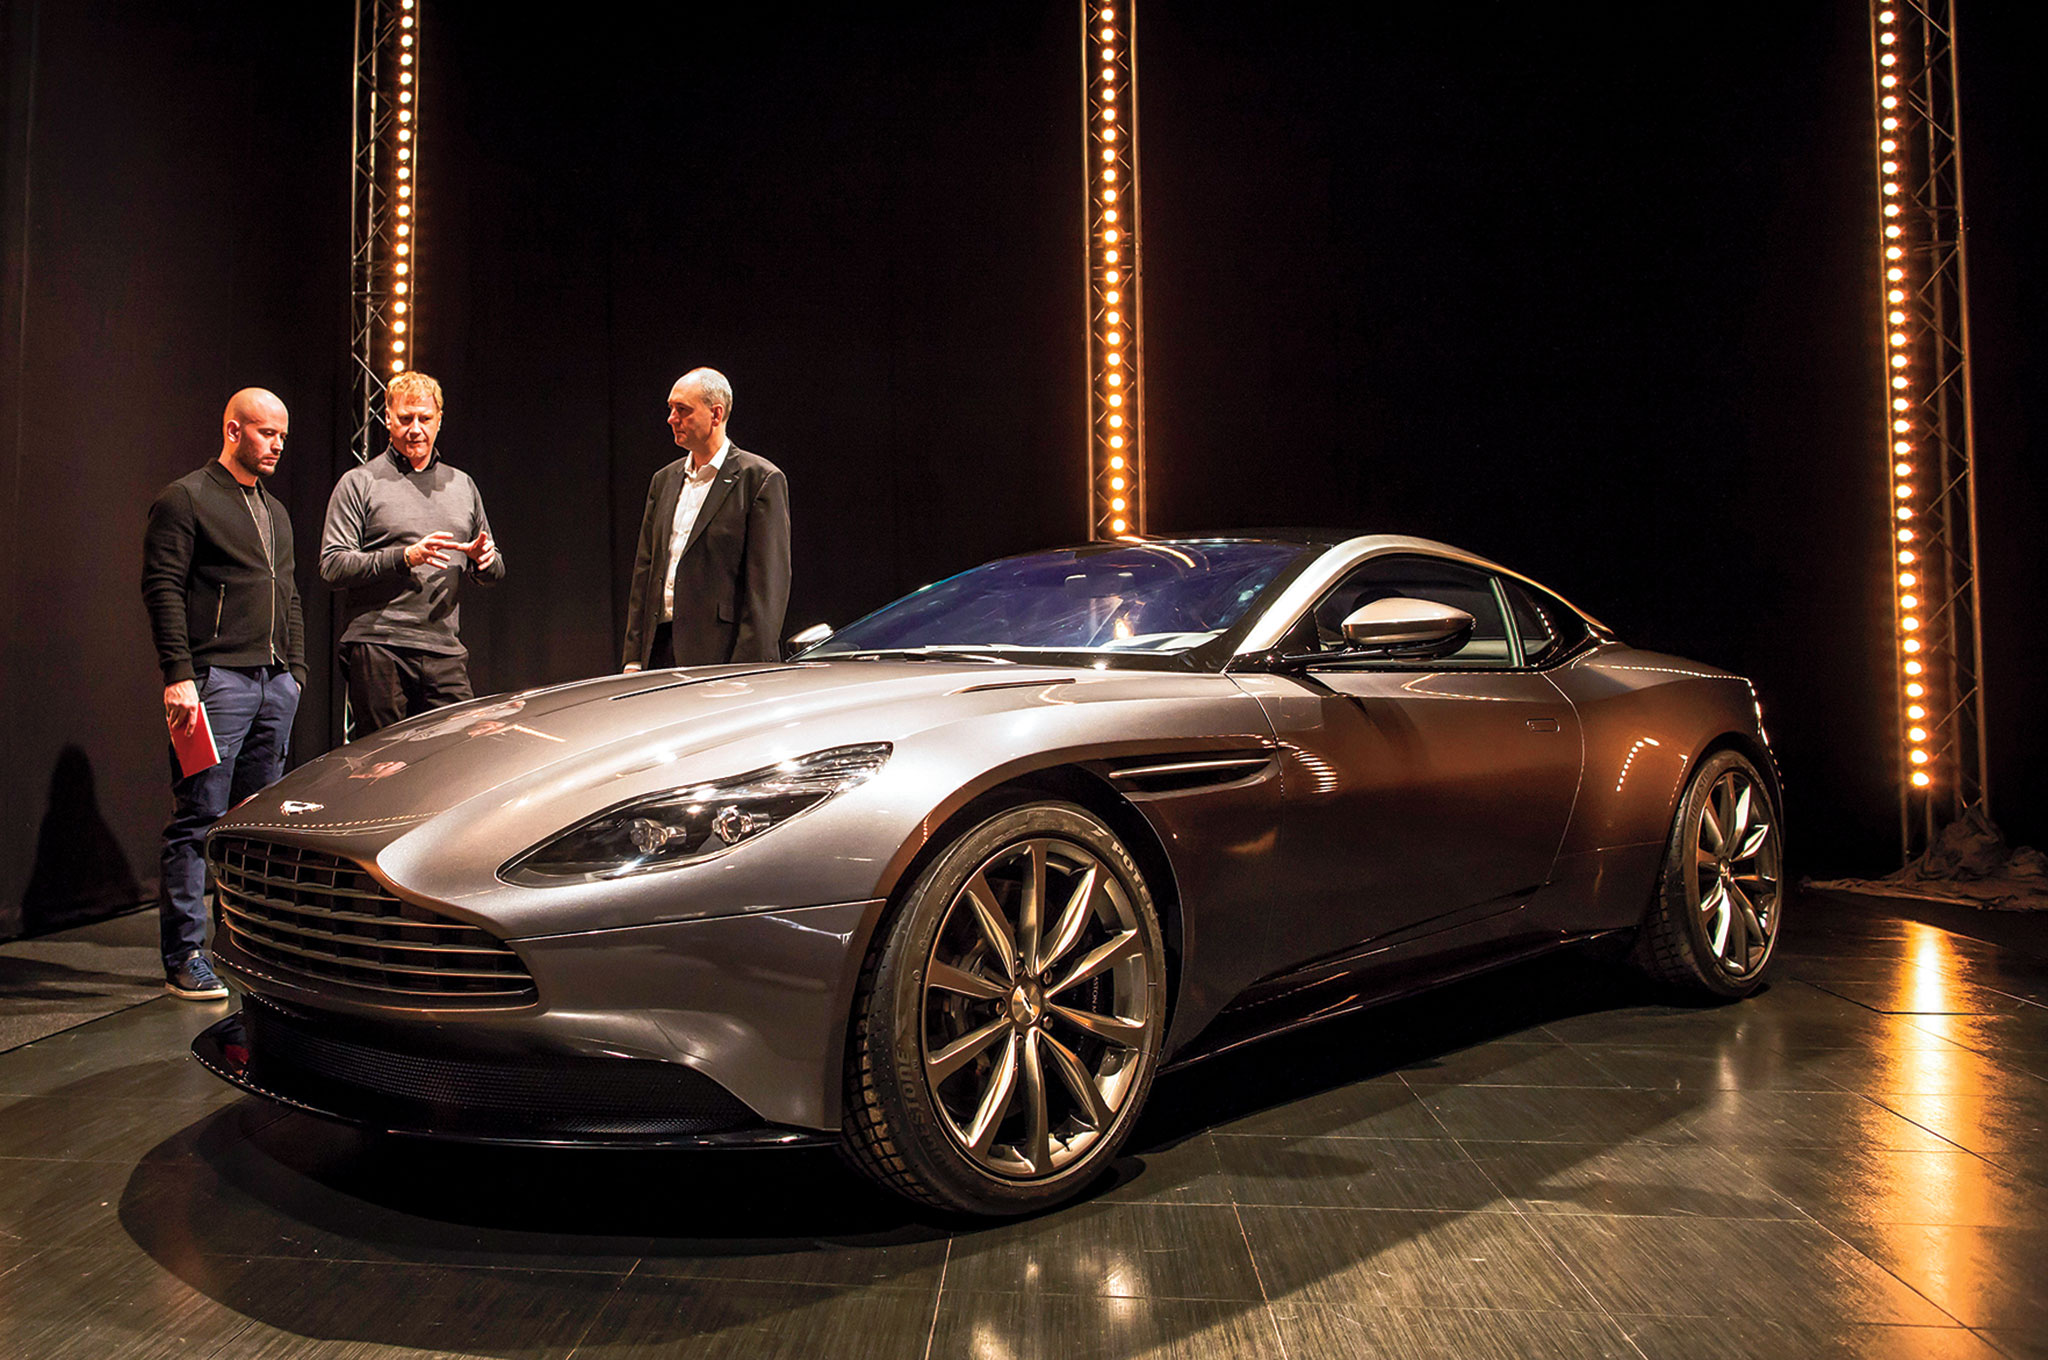 The Aston Martin Db Is A New Chapter In Automotive Design